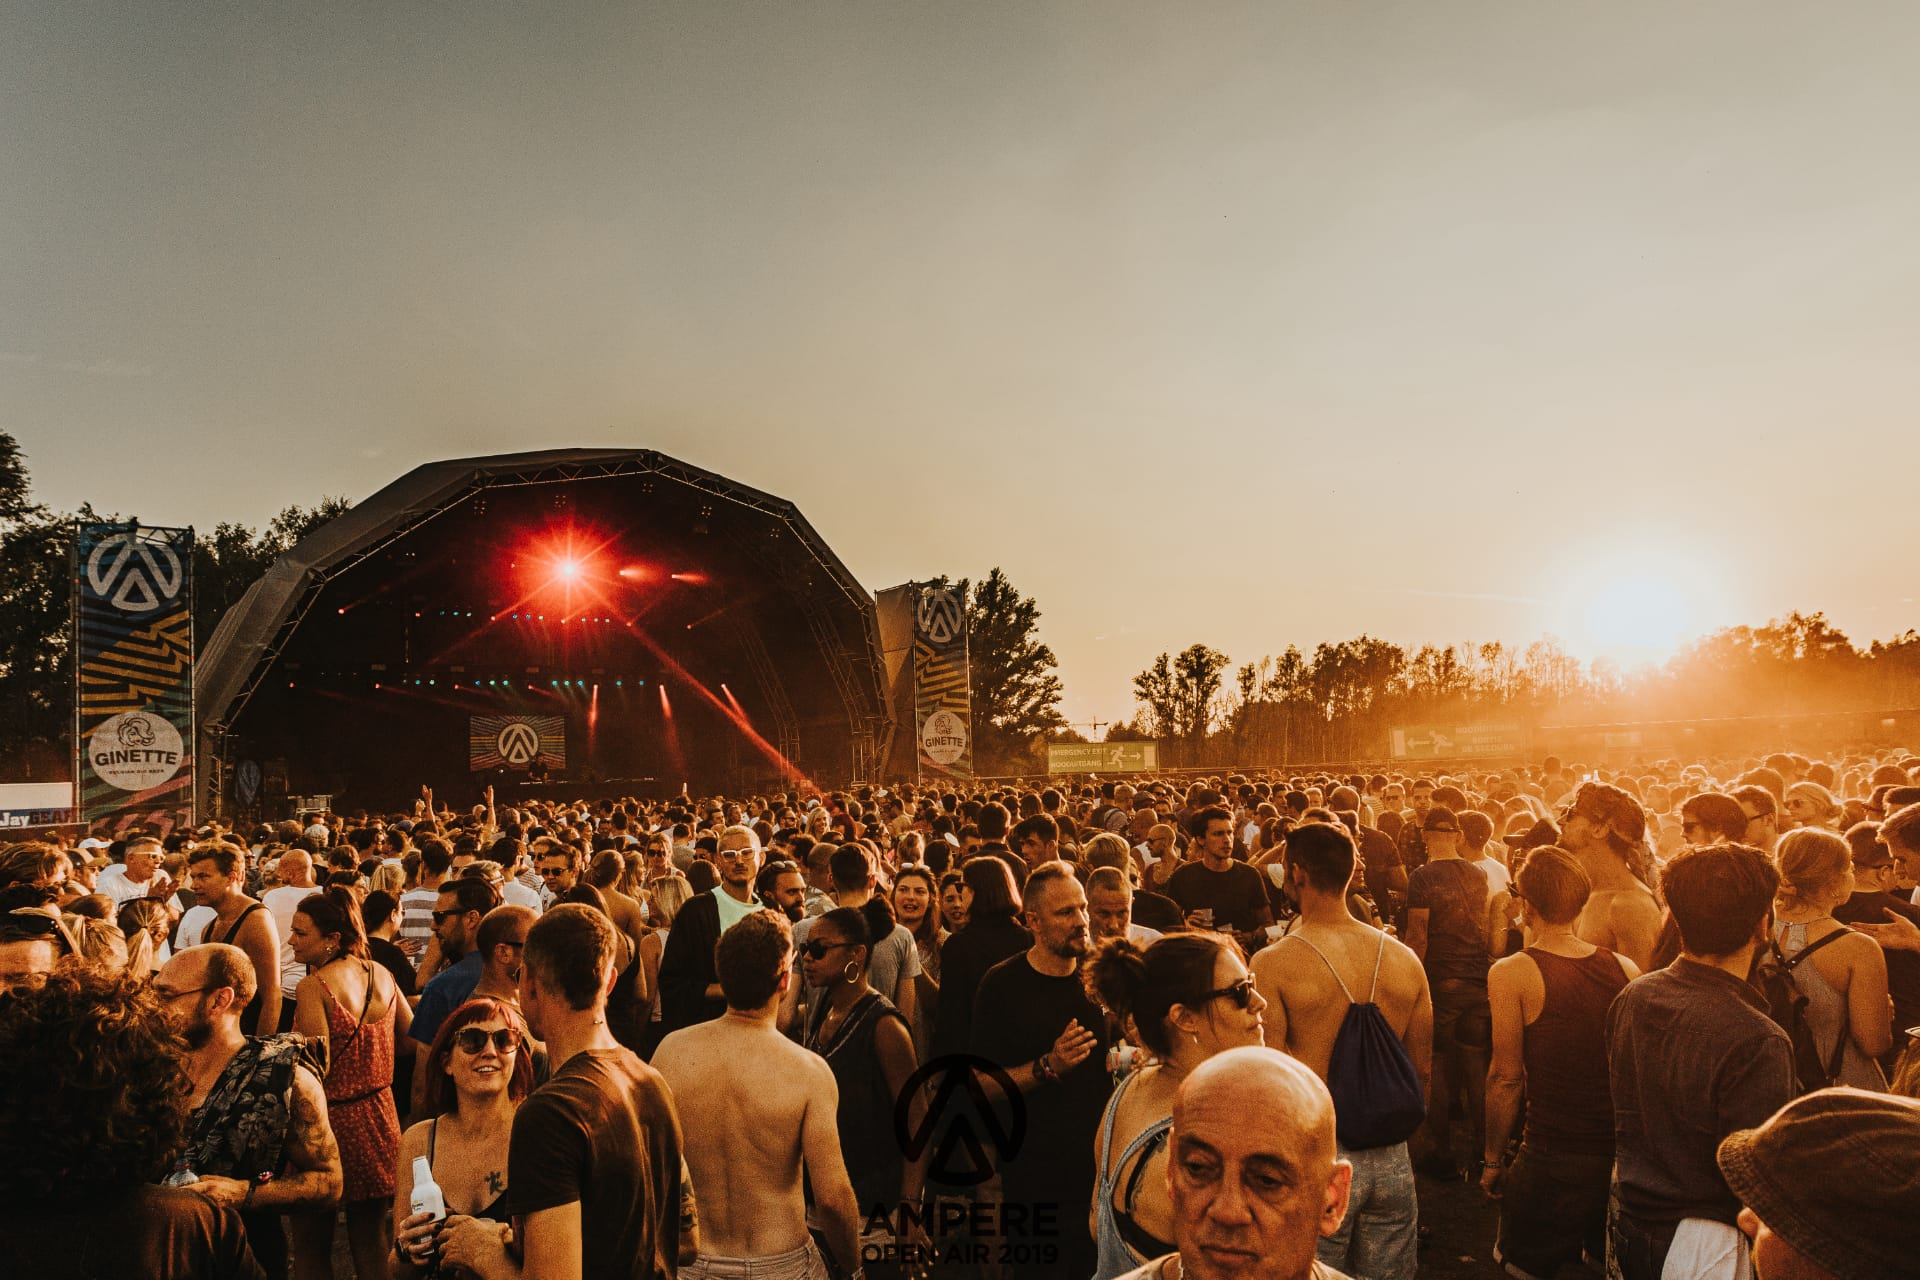 Ampere Open Air